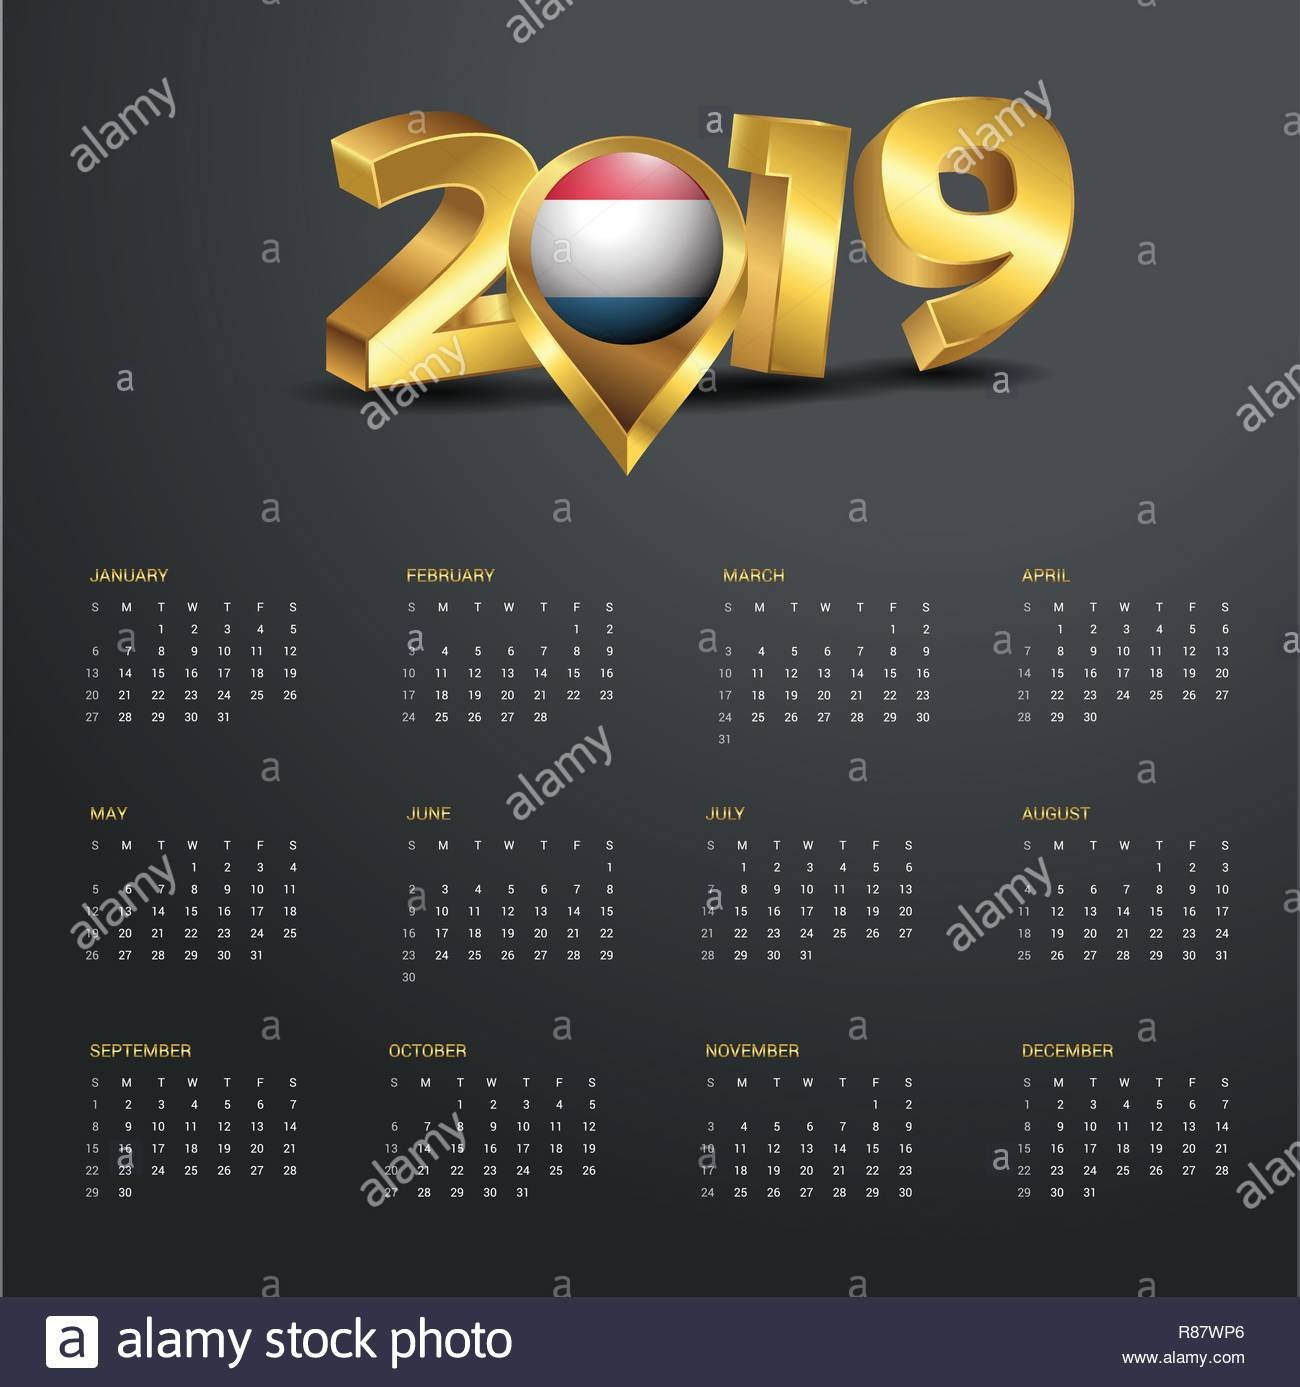 2019 Calendar Template. Luxembourg Country Map Golden Typography Calendar 2019 Luxembourg